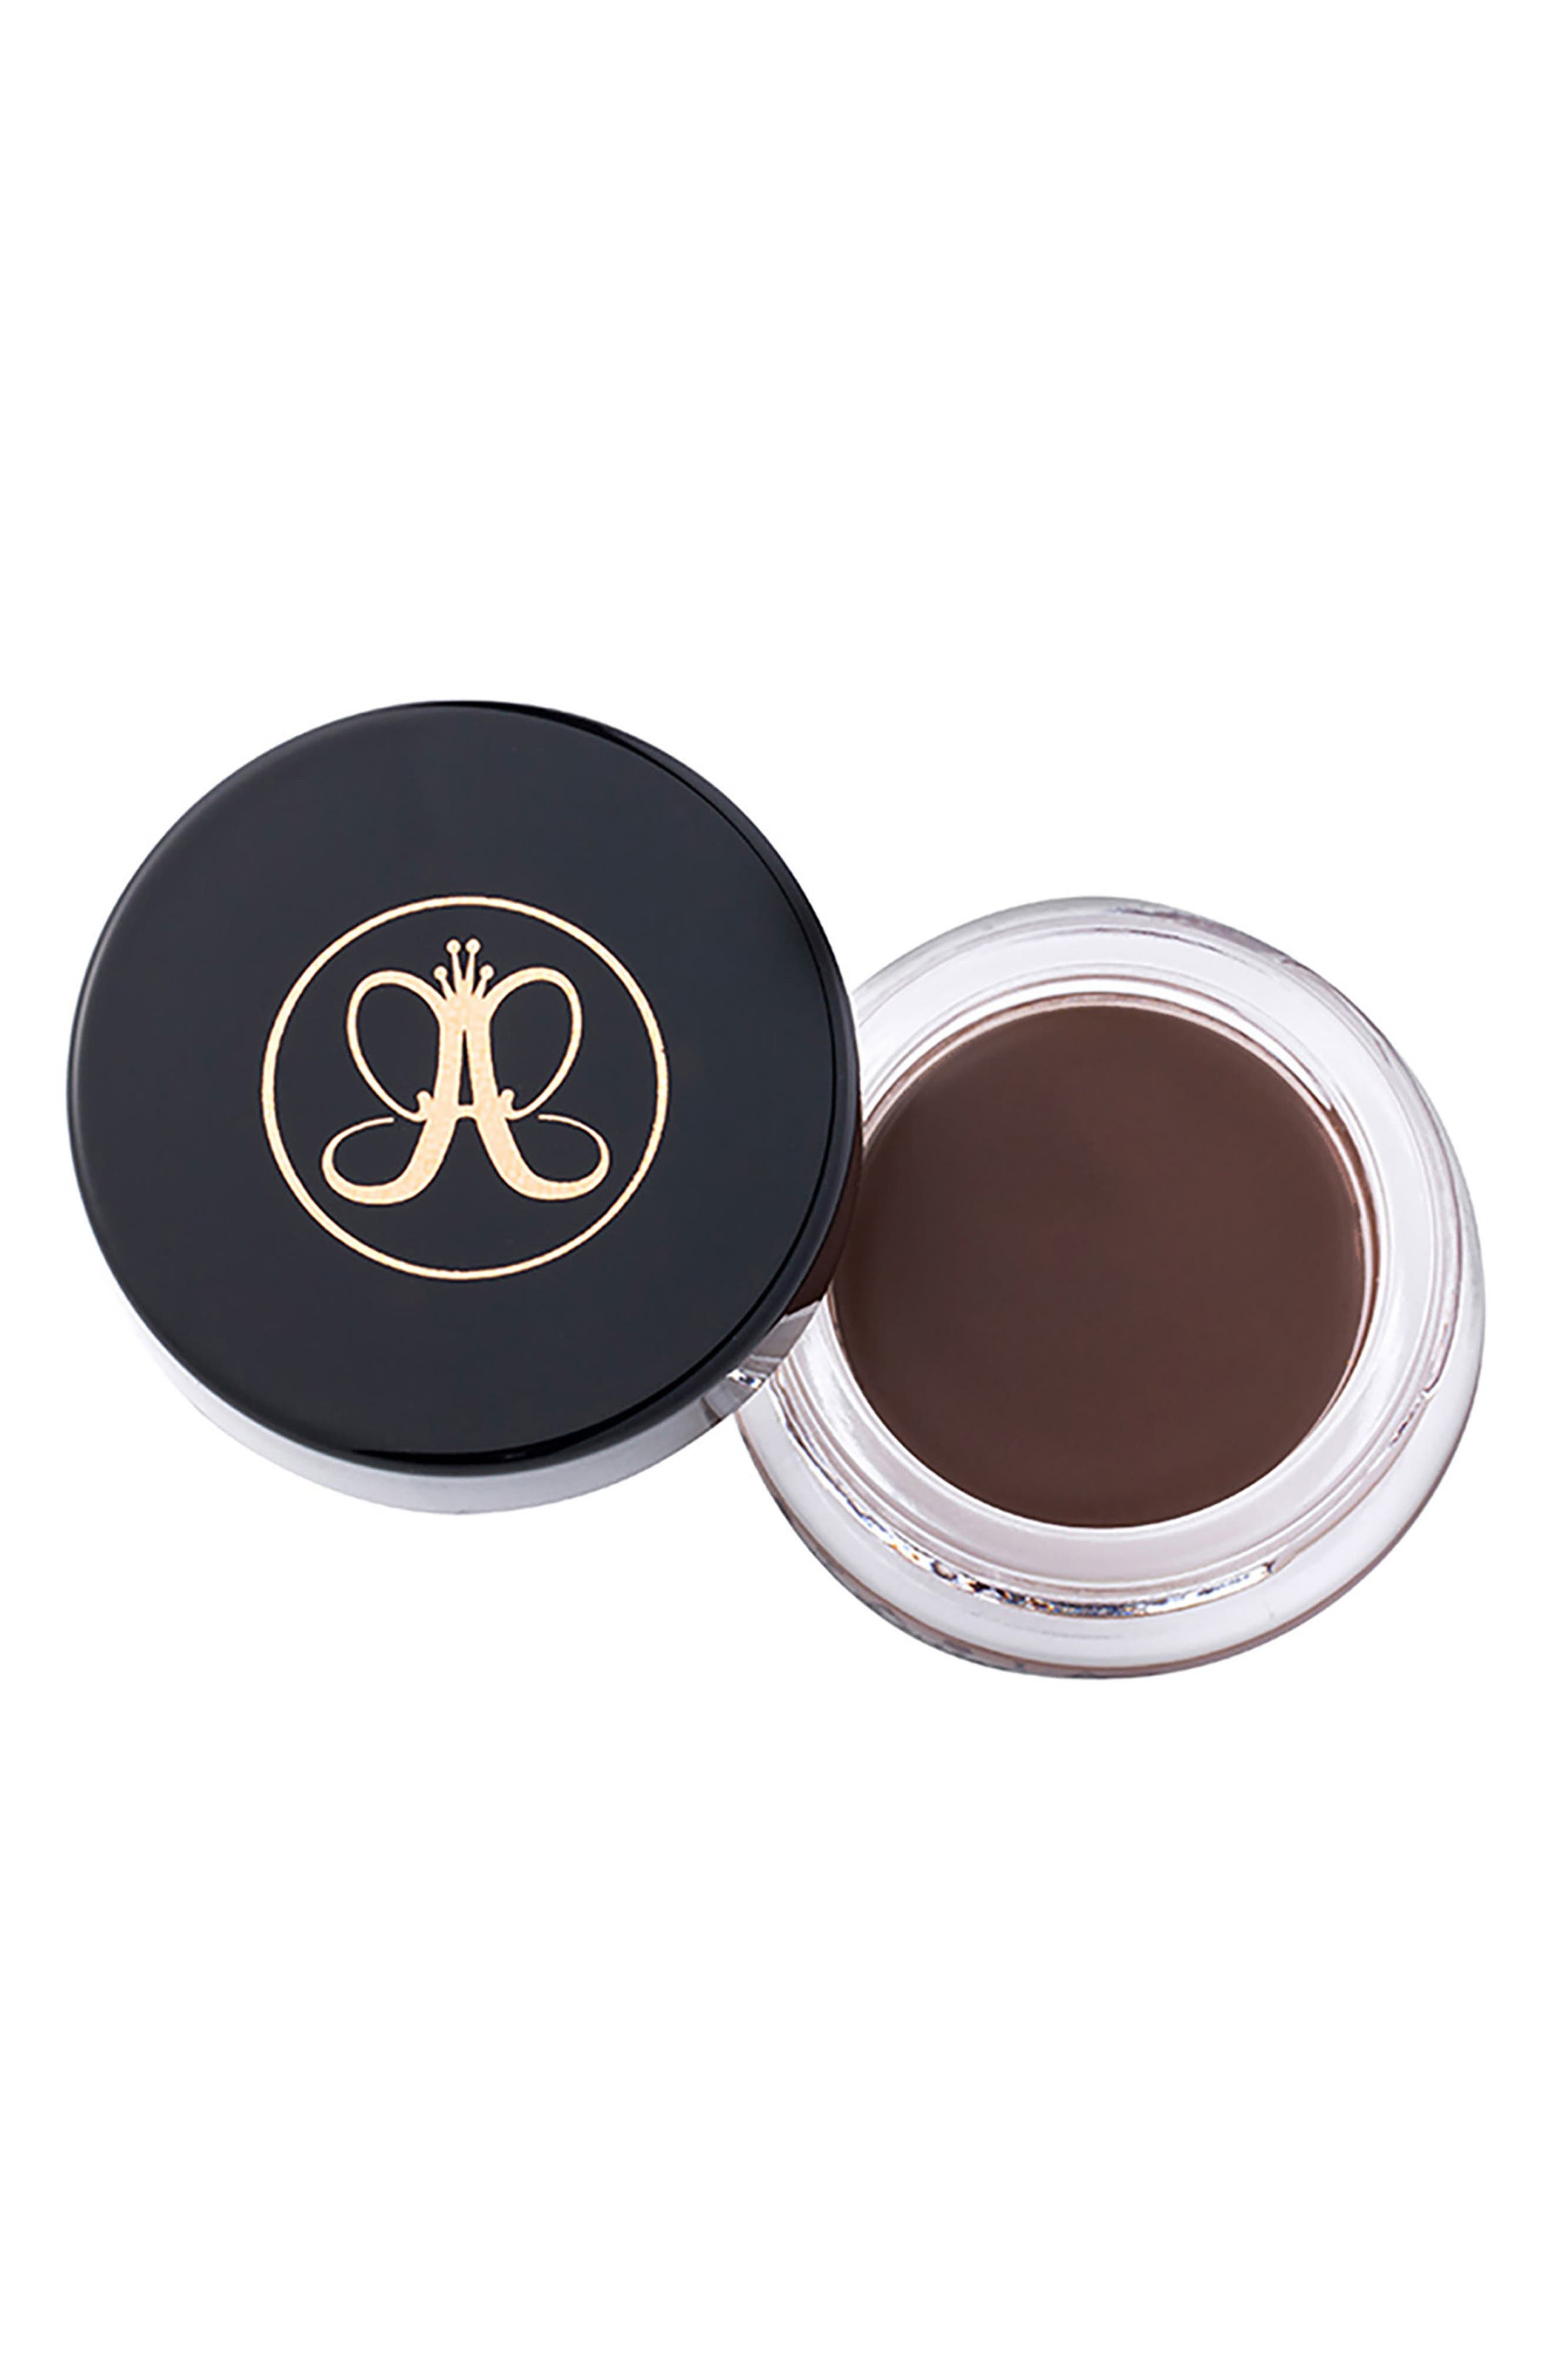 Anastasia Beverly Hills Dipbrow Pomade Waterproof Brow Color